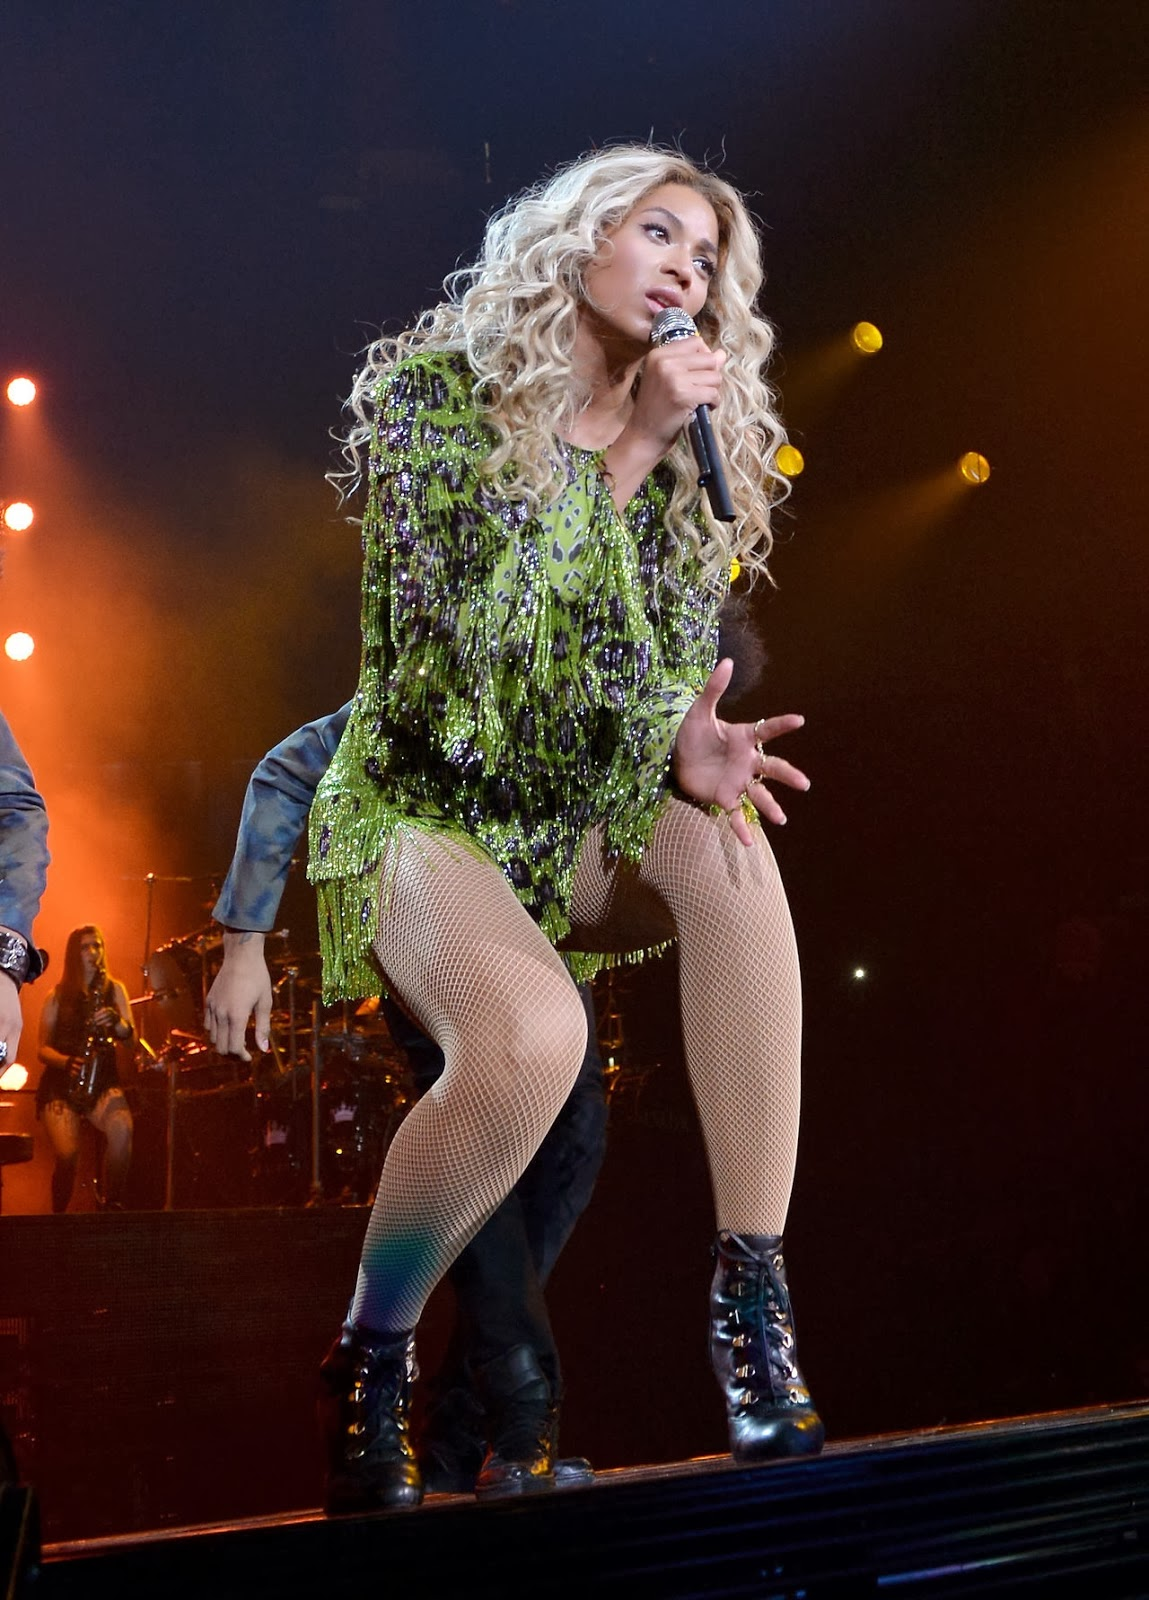 Beyonce Event Photoshoot from The Mrs Carter Show World Tour 2014